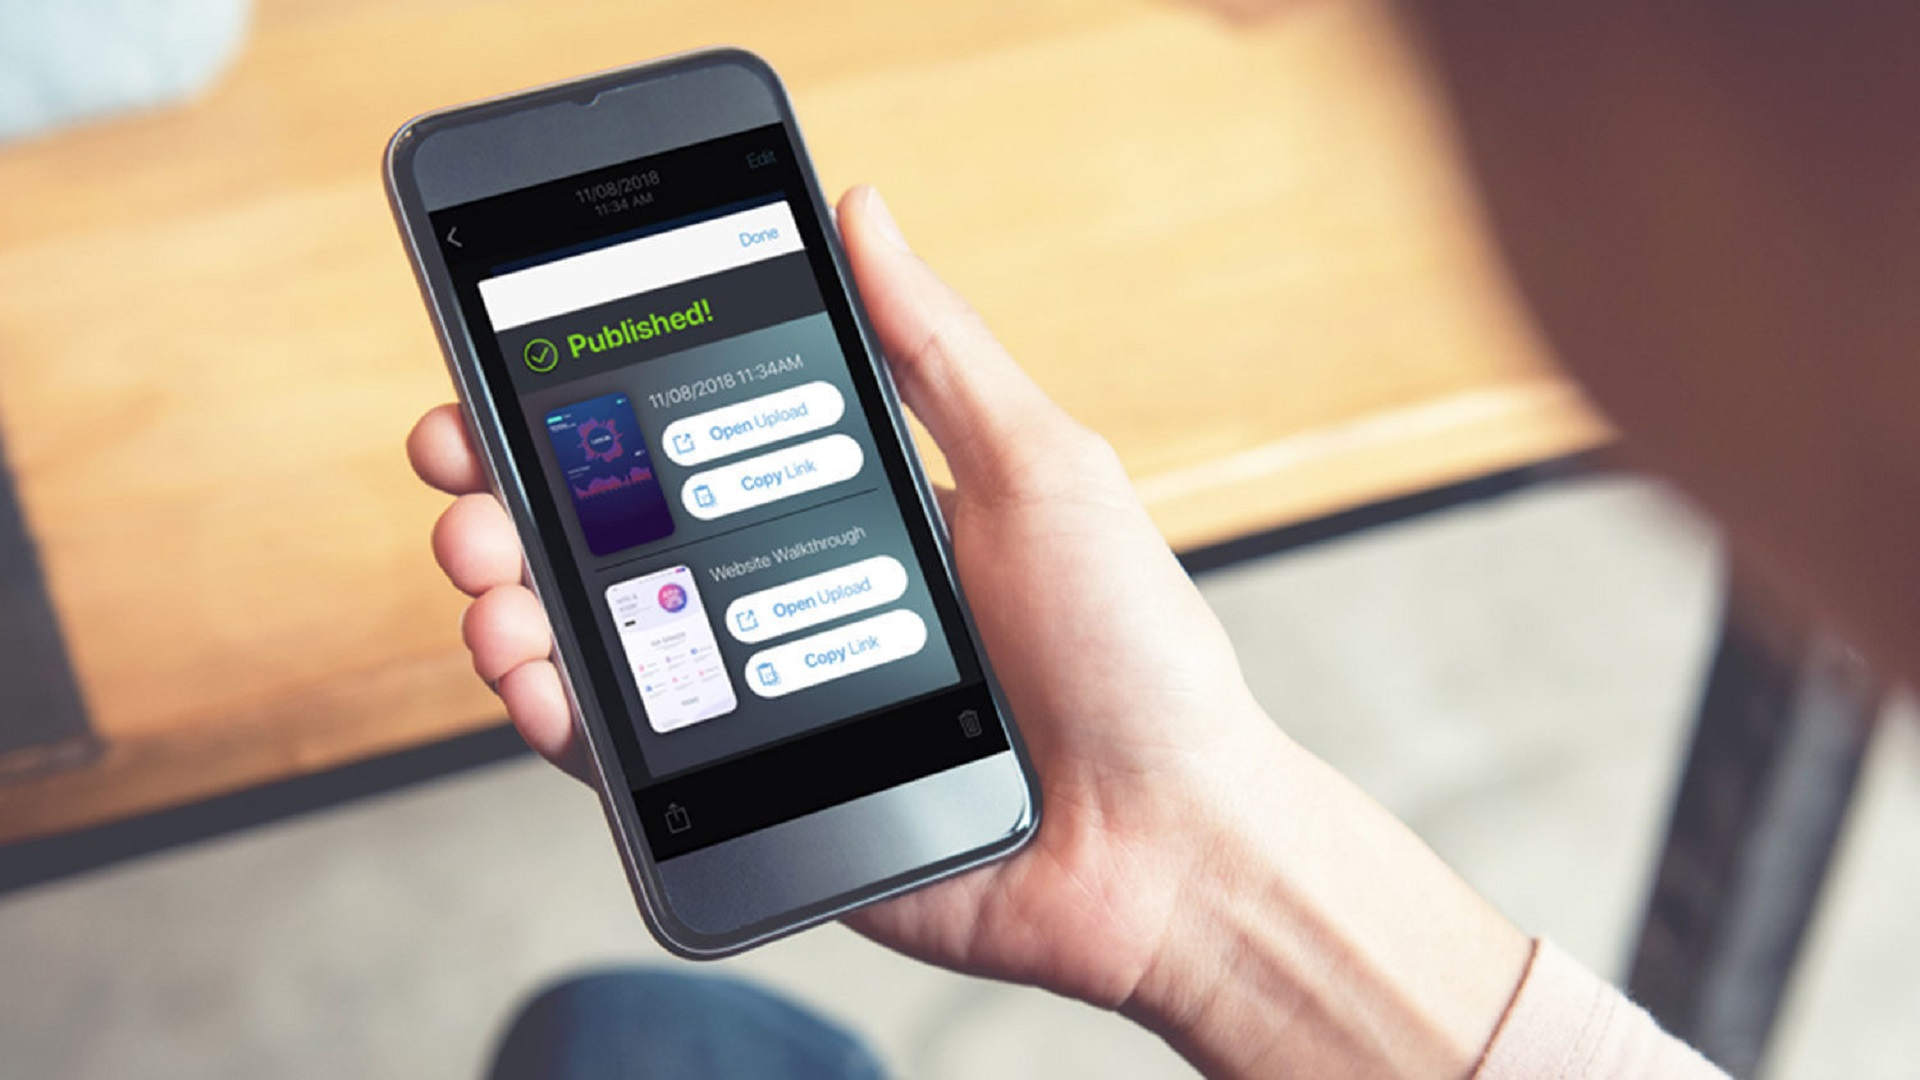 Upload to Screencast-O-Matic from Mobile Apps